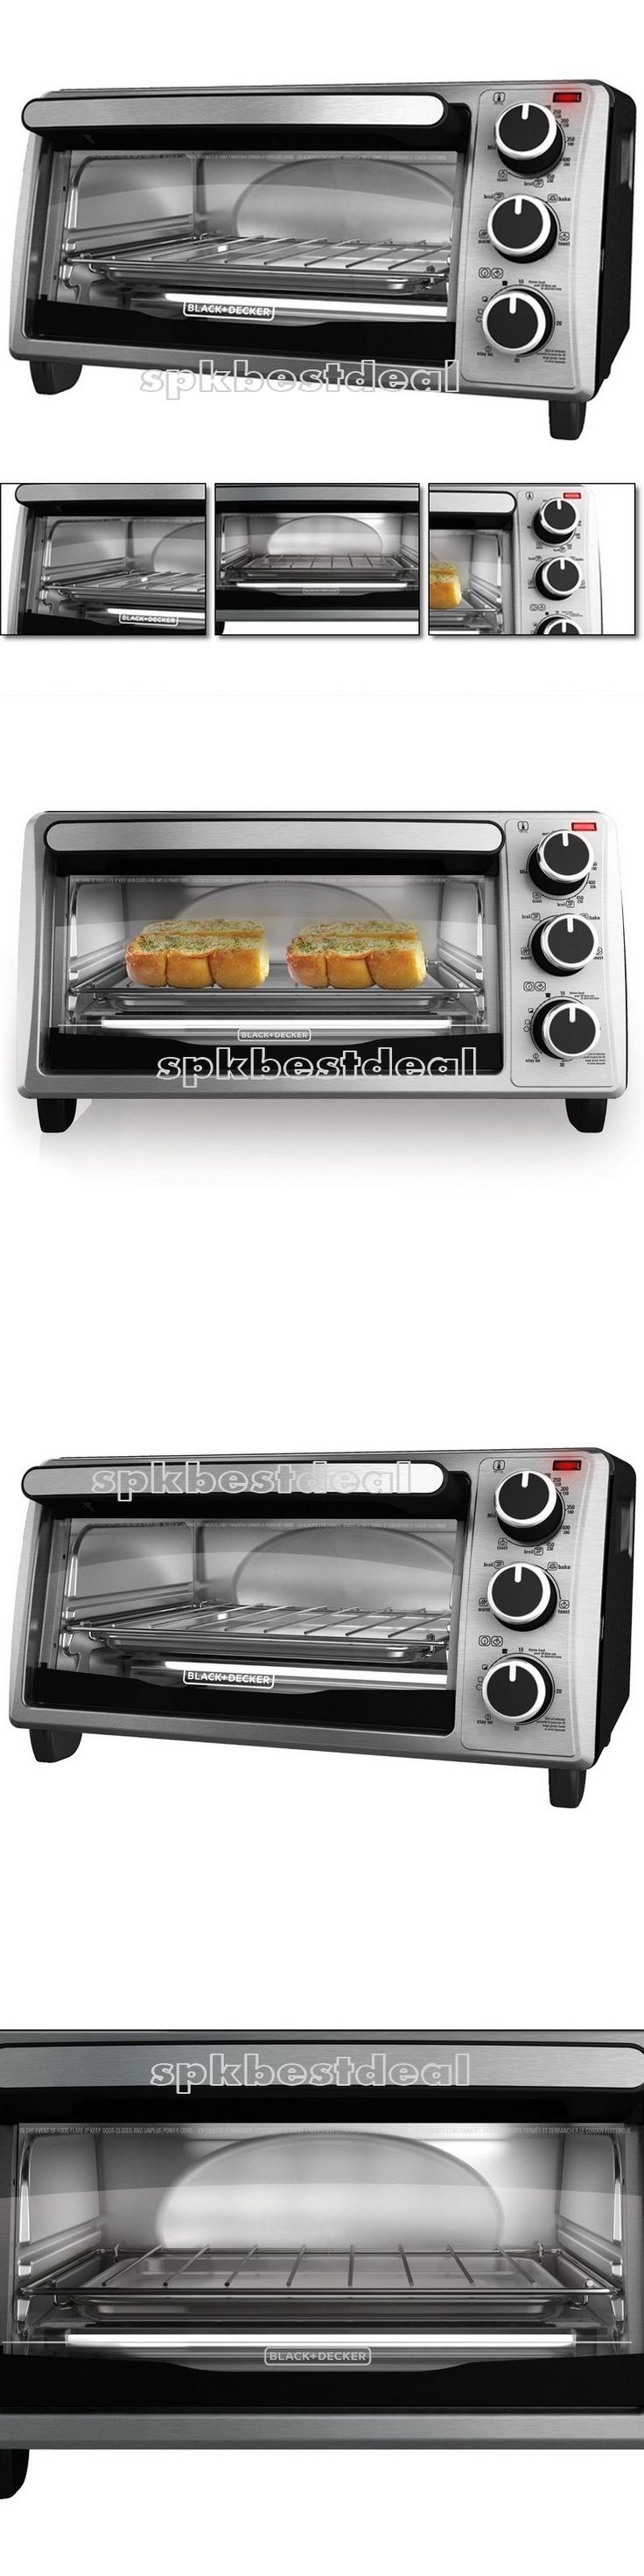 Infrared and Convection Ovens 150139: Electric Toaster Oven Pizza Bread Bake Broil Kitchen Food Cooking Baking Cook -> BUY IT NOW ONLY: $38.25 on eBay!